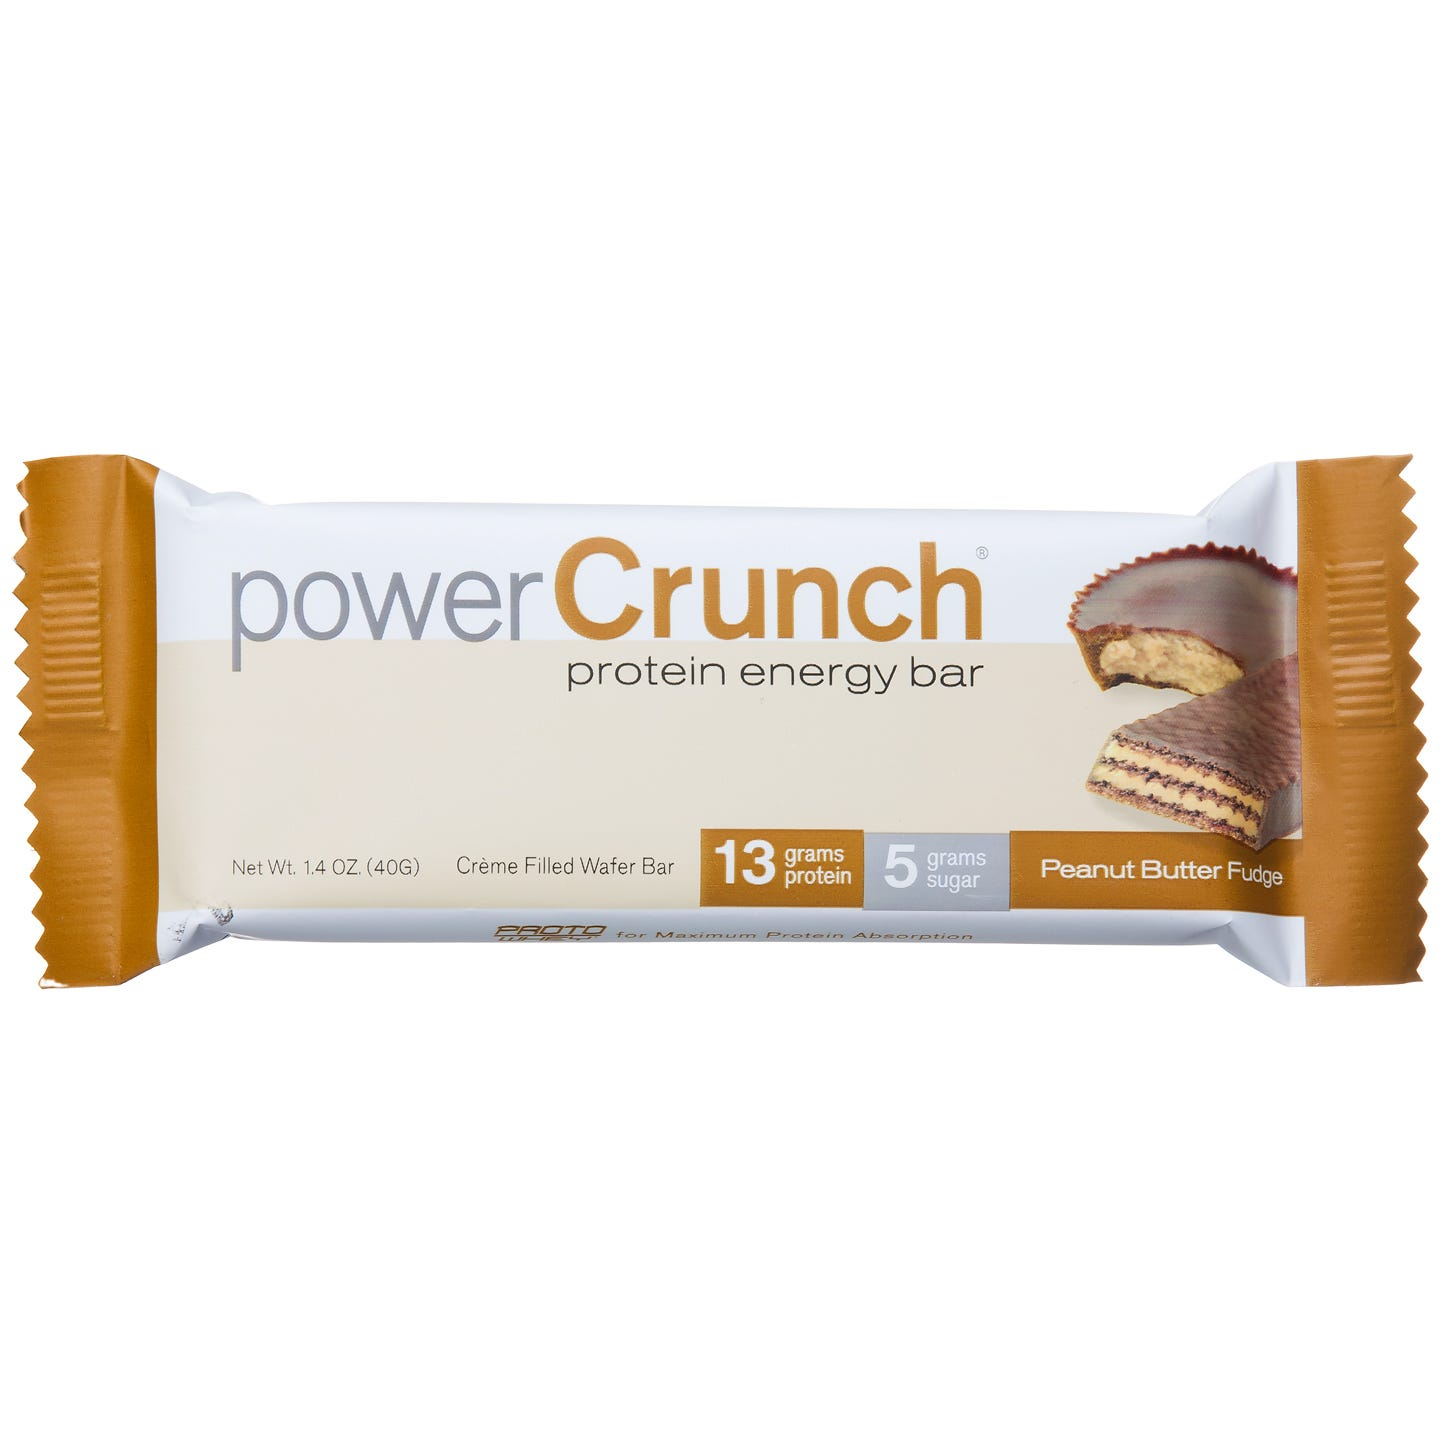 ... Crunch Bars Diet Weight Loss Foods and Supplements - Rapid Diet.net